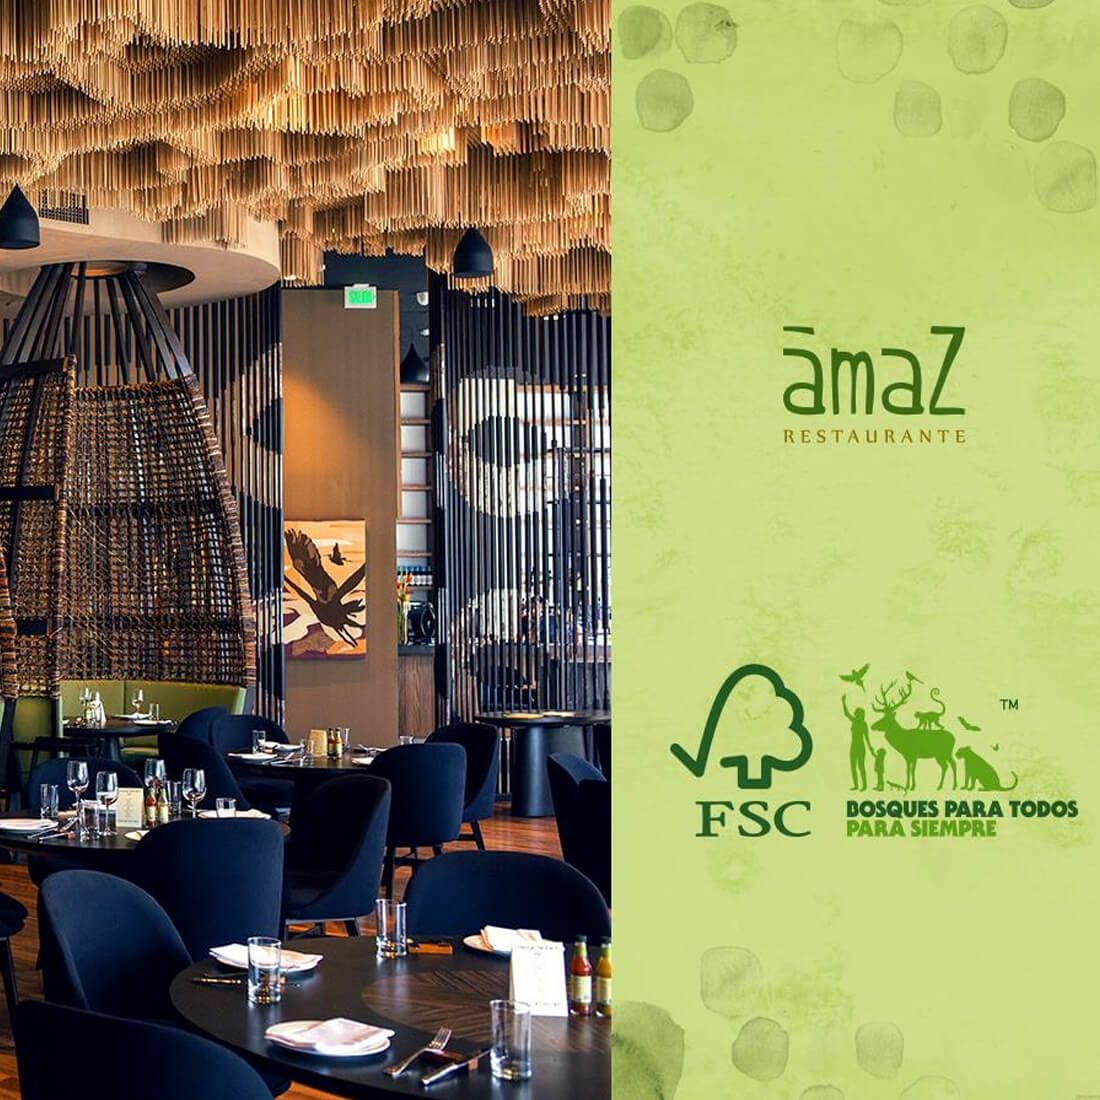 AMAZ PATIO PANORAMA Restaurant - and Peruvian Food AMAZONIAN FOOD - SANTIAGO DE SURCO - MESA 24/7 Guide | LIMA - Peru